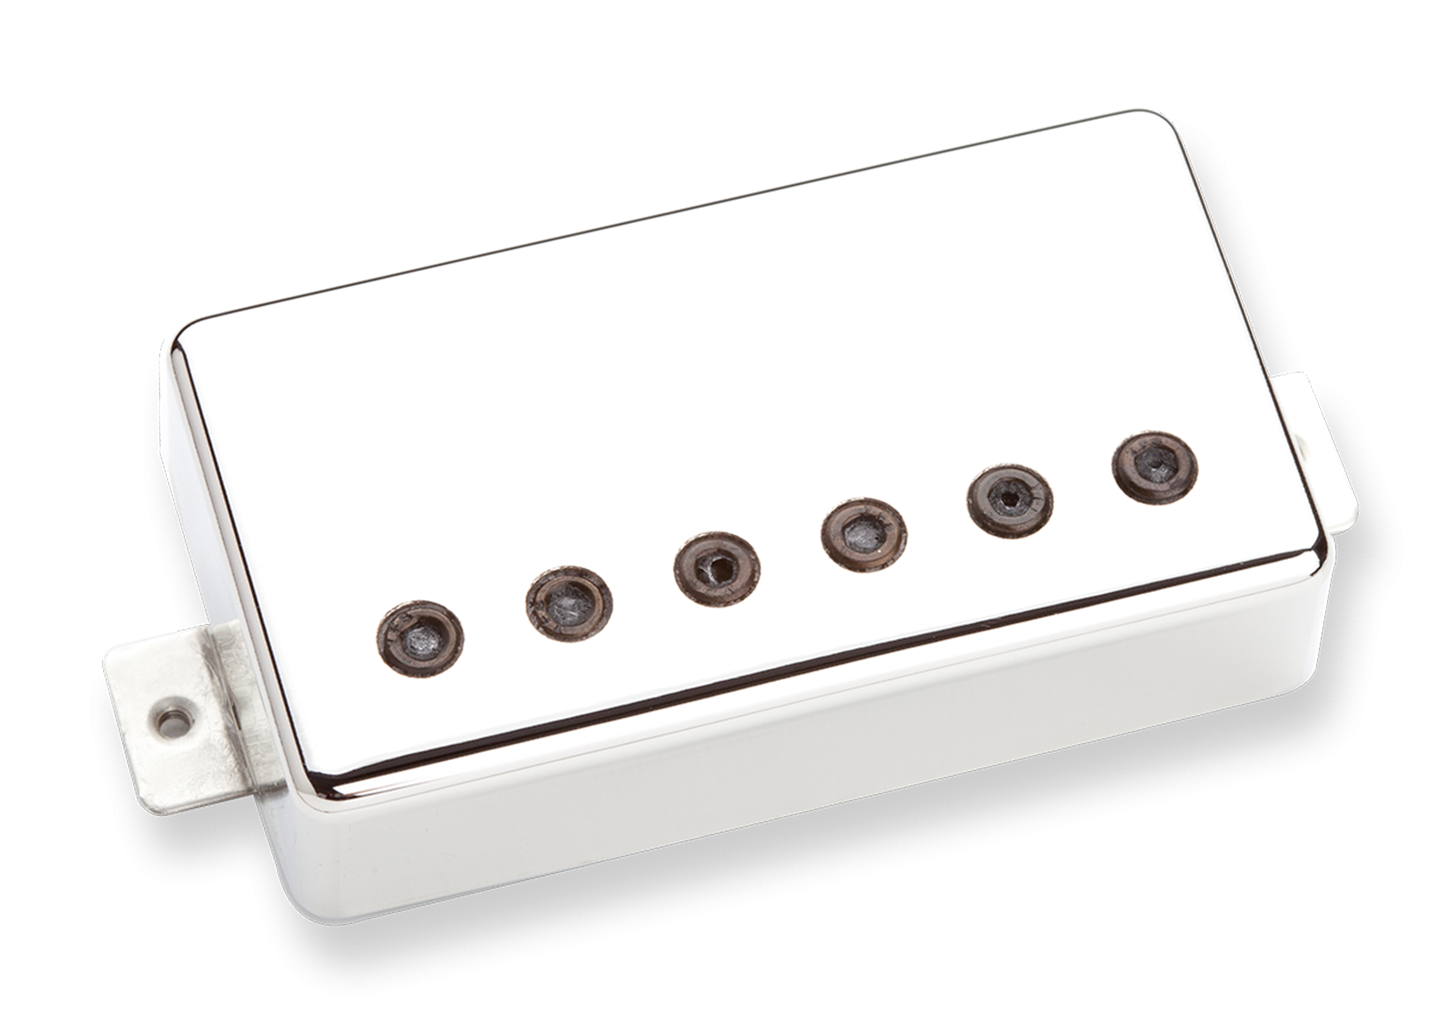 Seymour Duncan Full Shred Humbucker - SH-10B Bridge Nickel